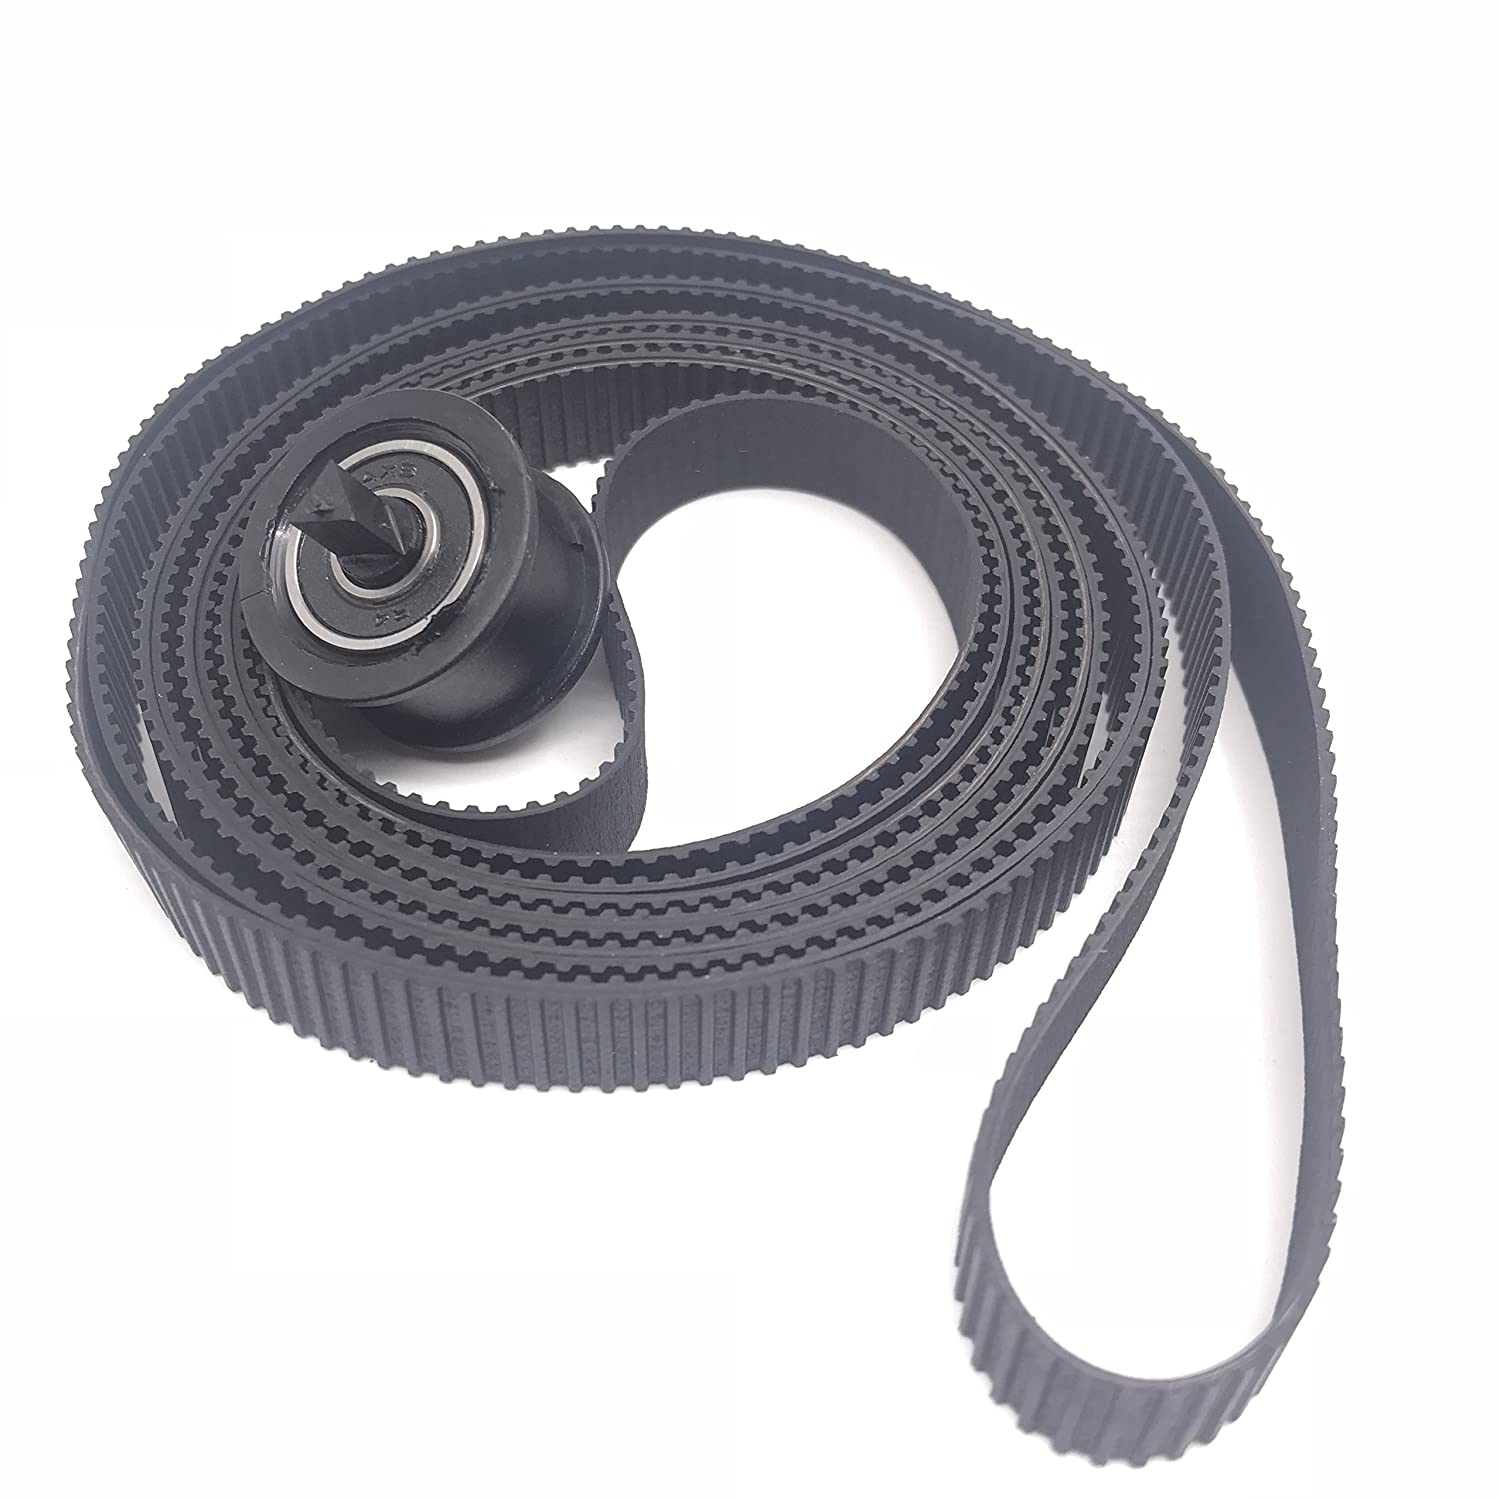 OKLILI C7769-60182 Carriage Belt (24 inch) A1 for HP DesignJet 500 500PS 510 510PS 800 800PS Plus 4500 820 T1100 MFP 4020 T620 T1200